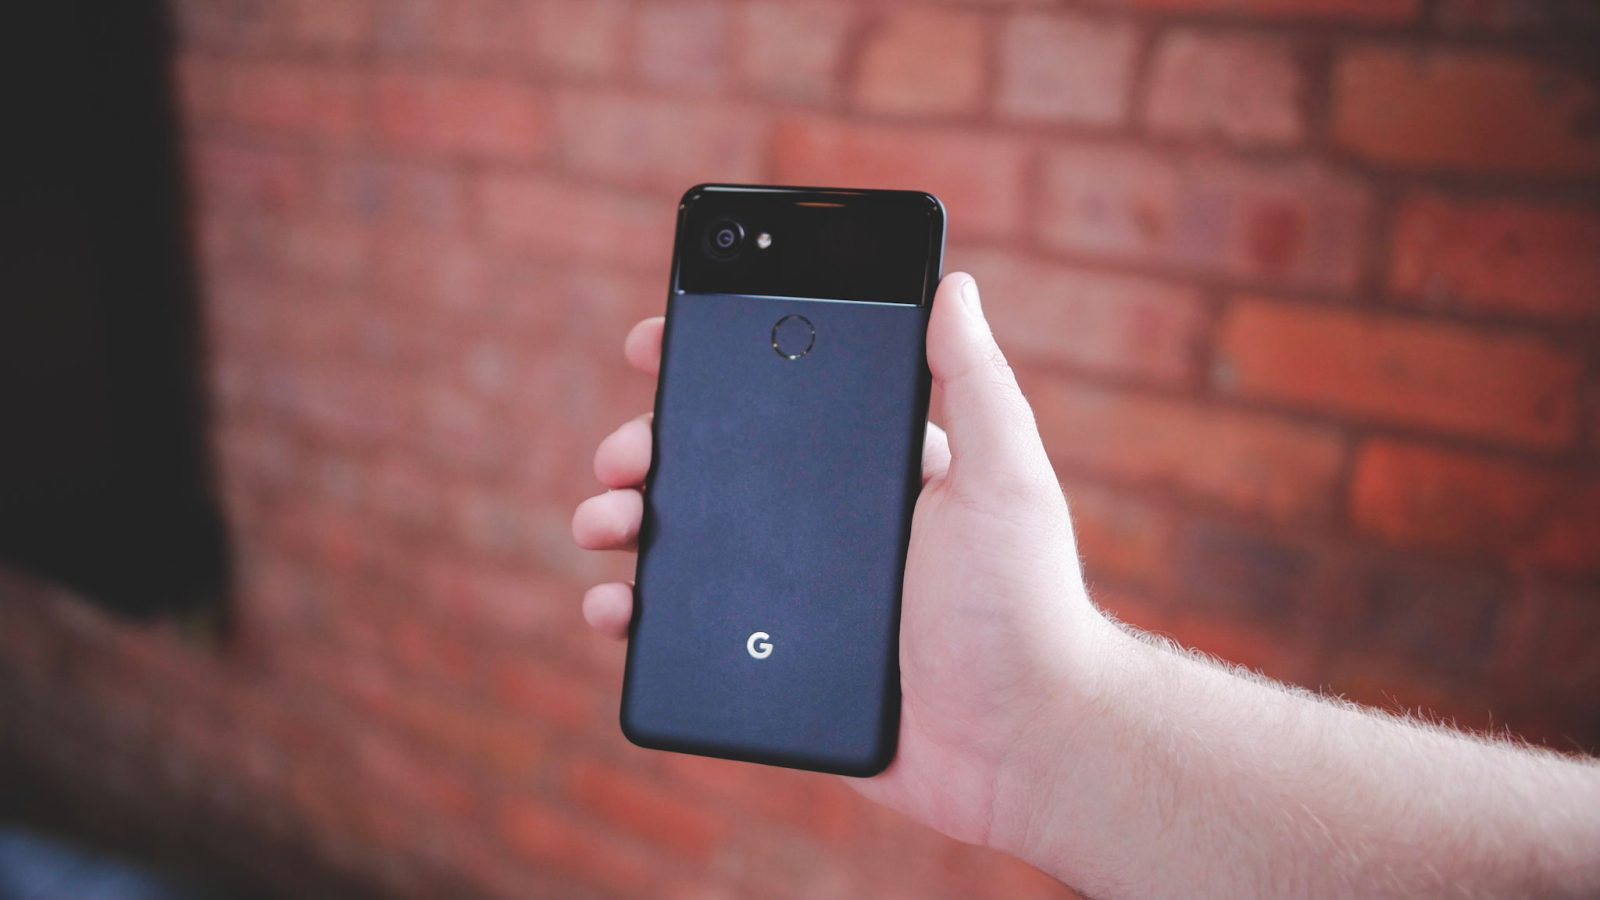 This app will let you remap the Google Pixel 2's squeeze gesture